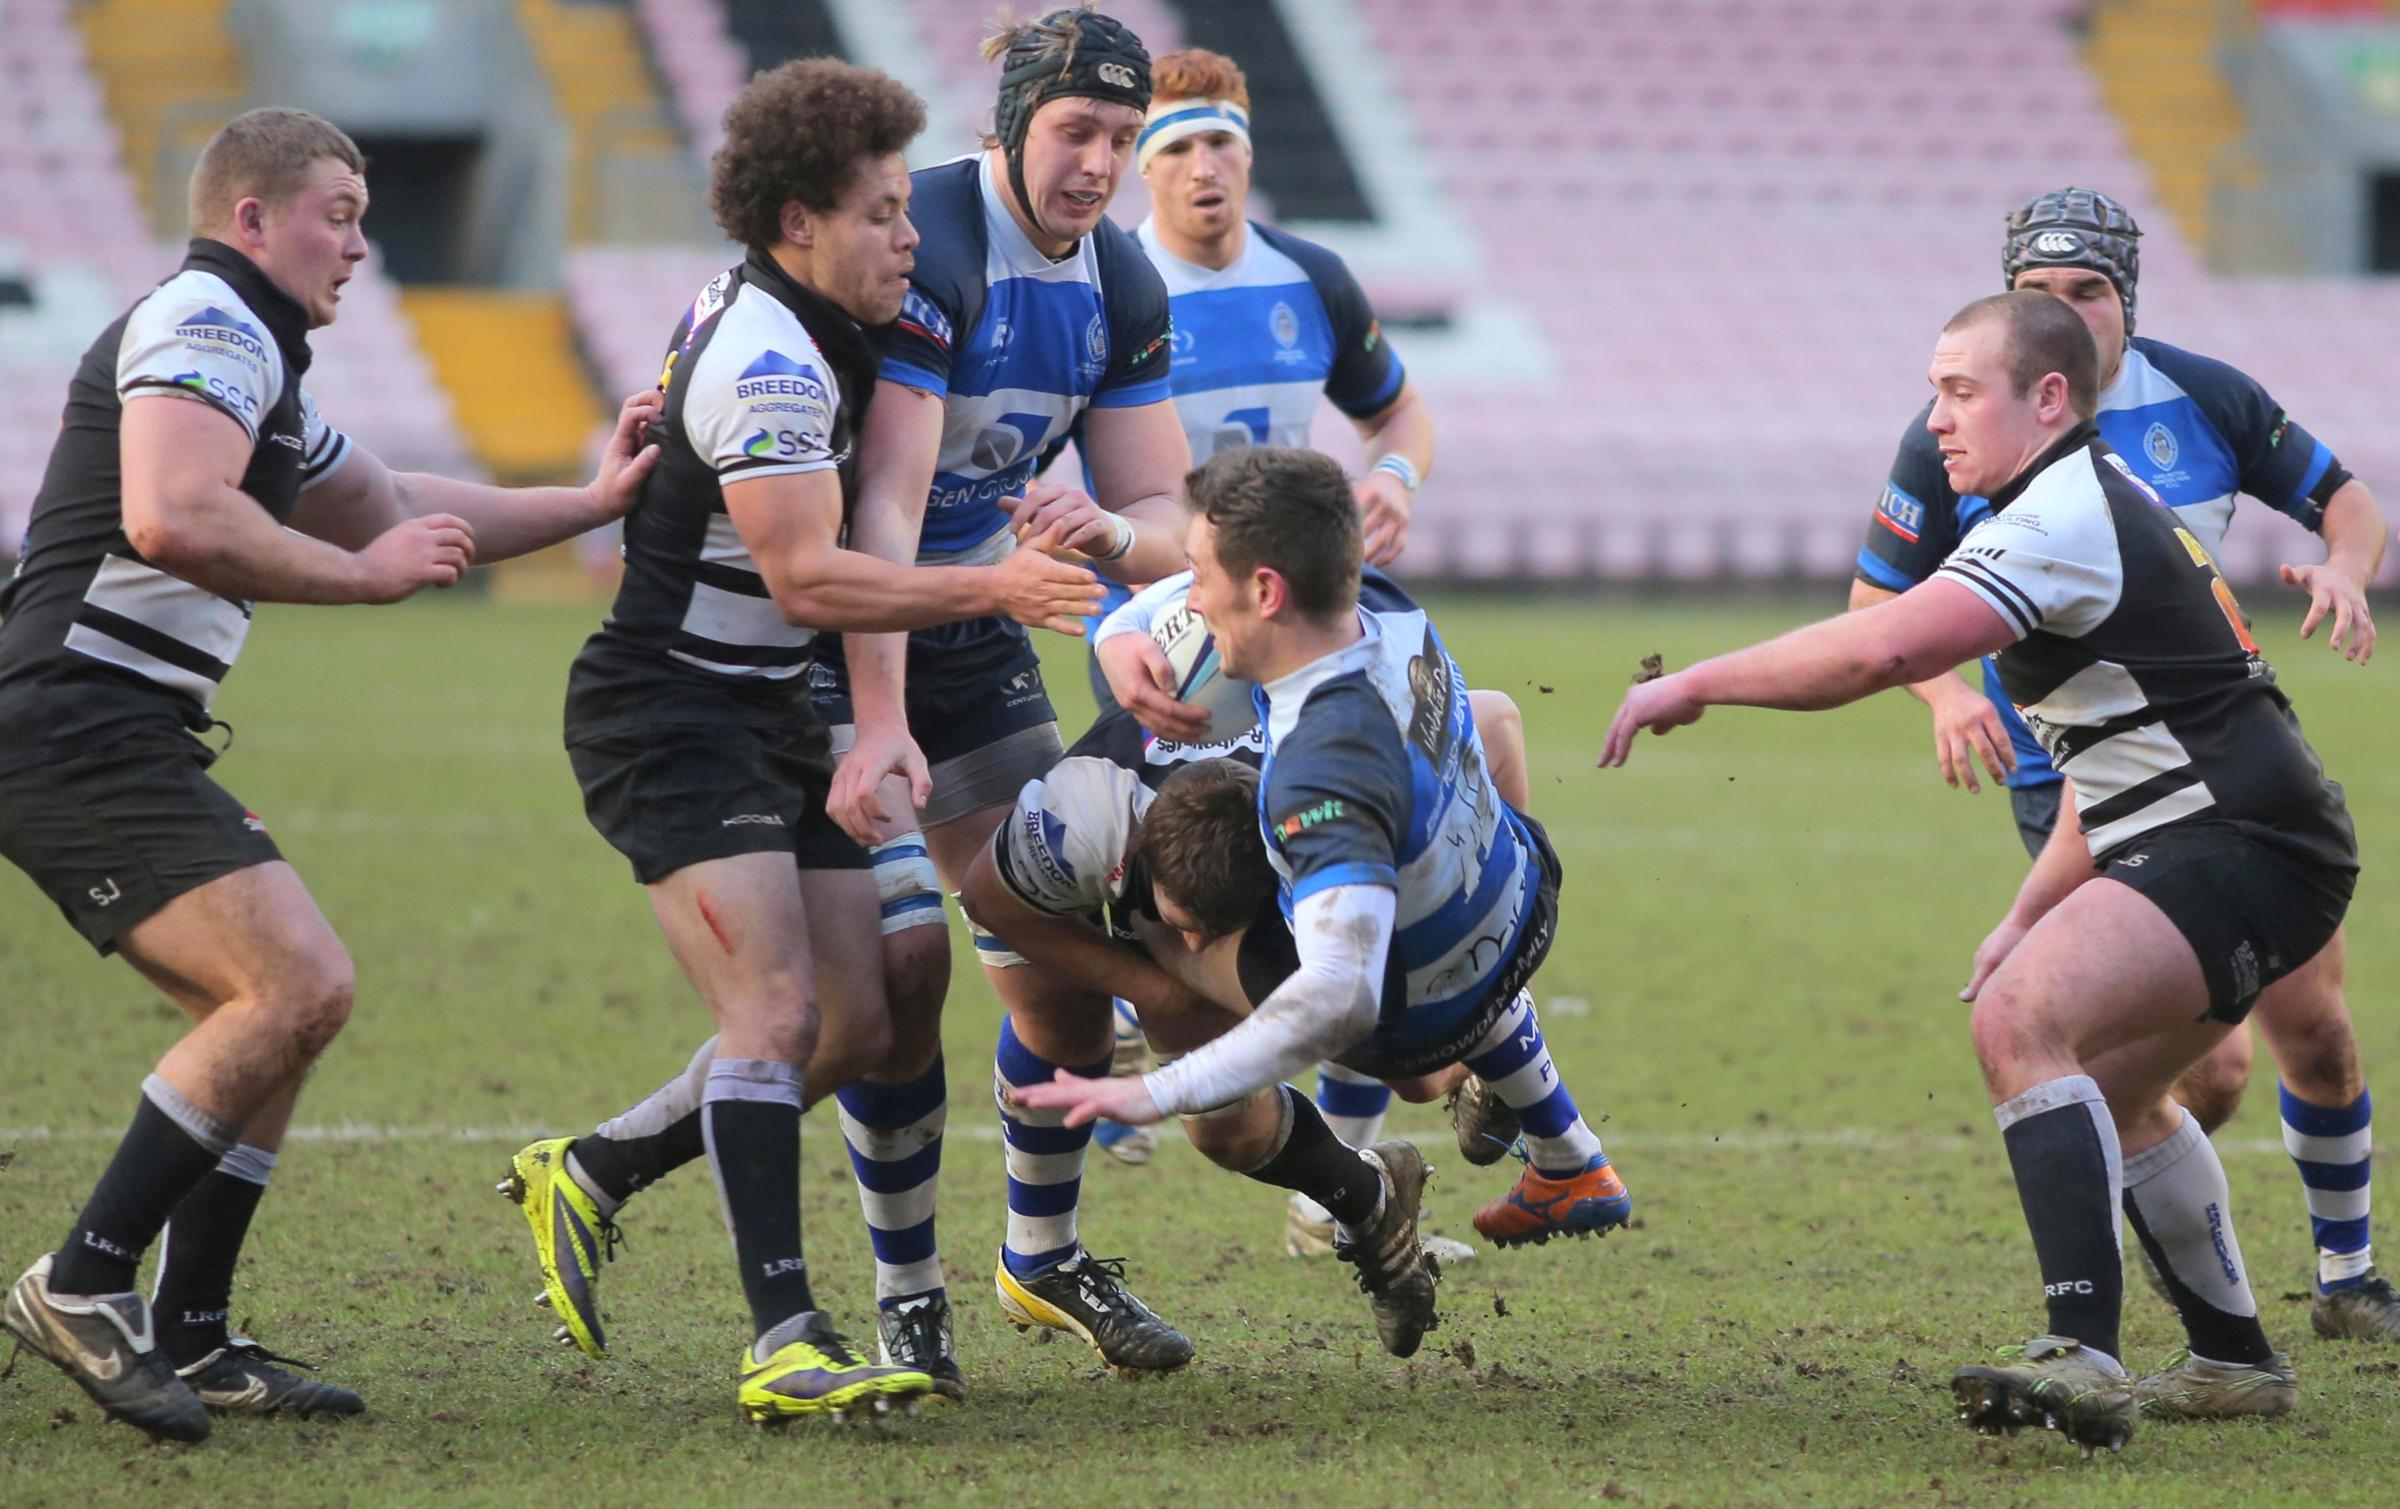 UNDER PRESSURE: Mowden Park's Gav Painter is tackled by the Luctonians' opposition on Saturday